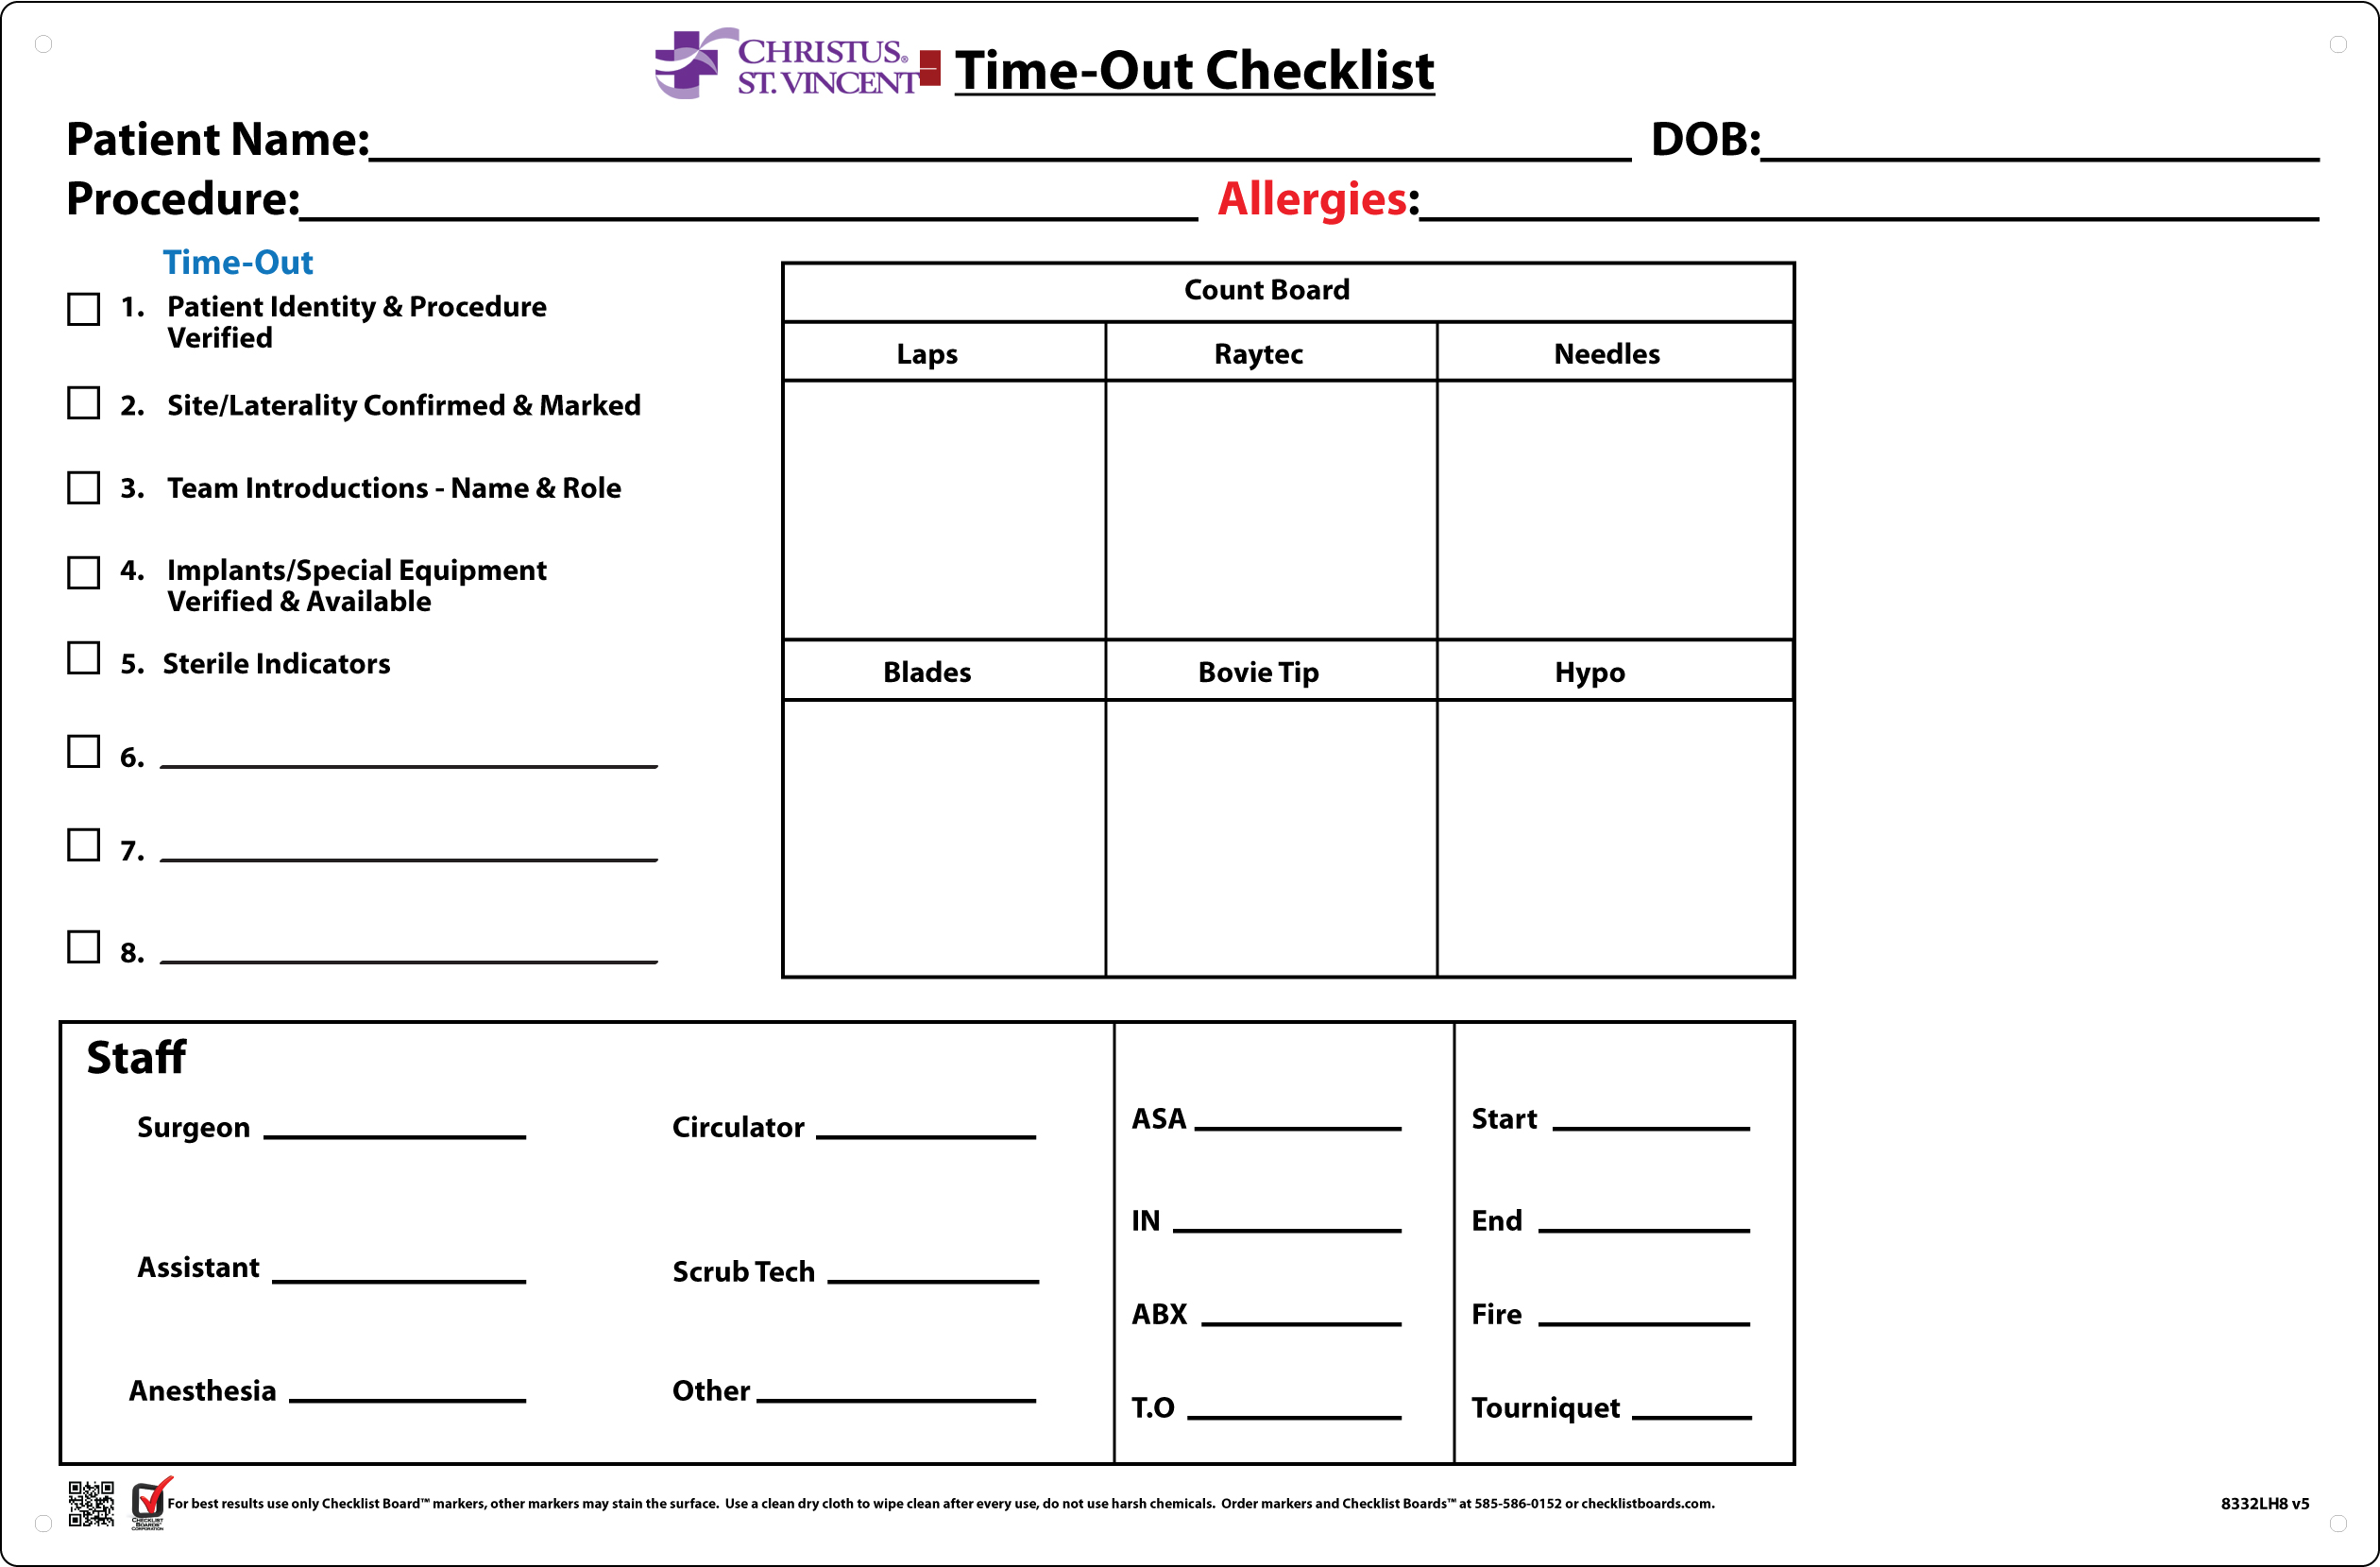 Christus St Vincent Chooses Checklist Boards For Time Outs